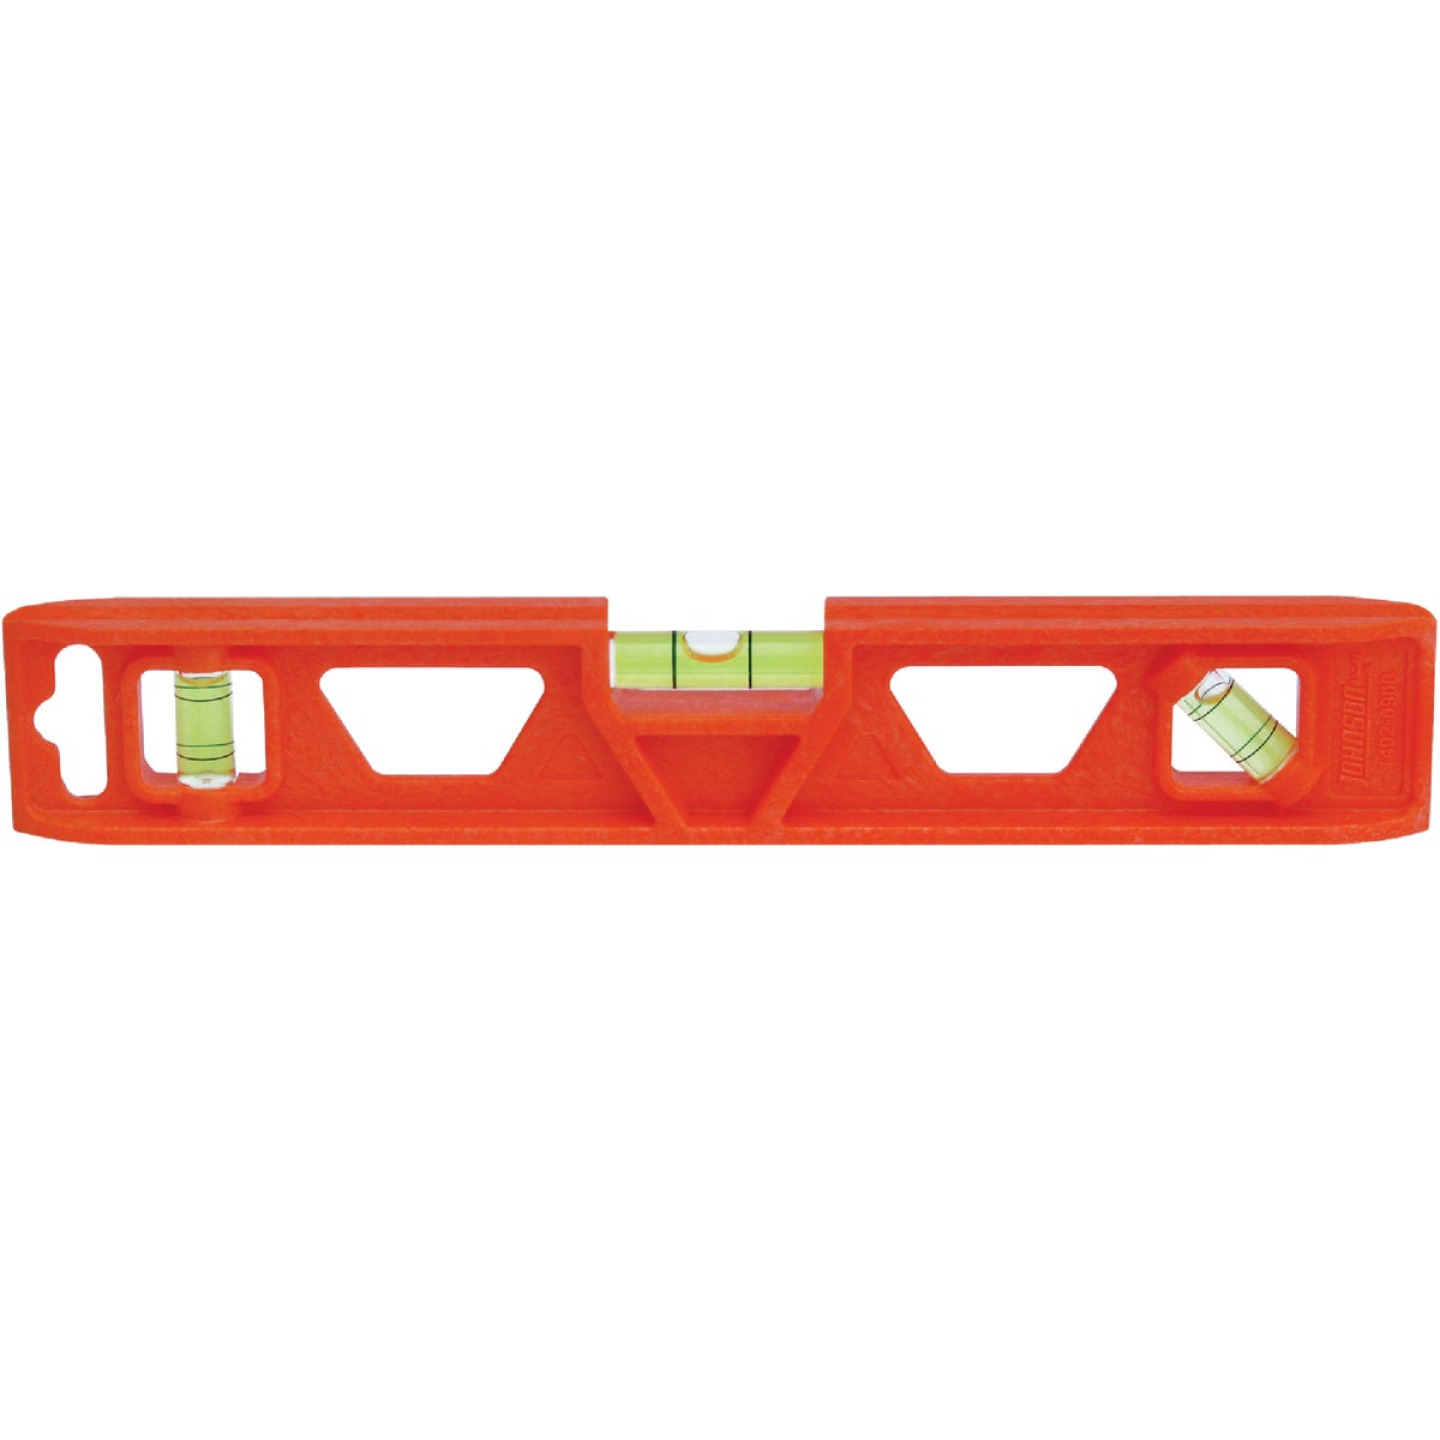 Johnson Level 9 In. Plastic Torpedo Level Image 1